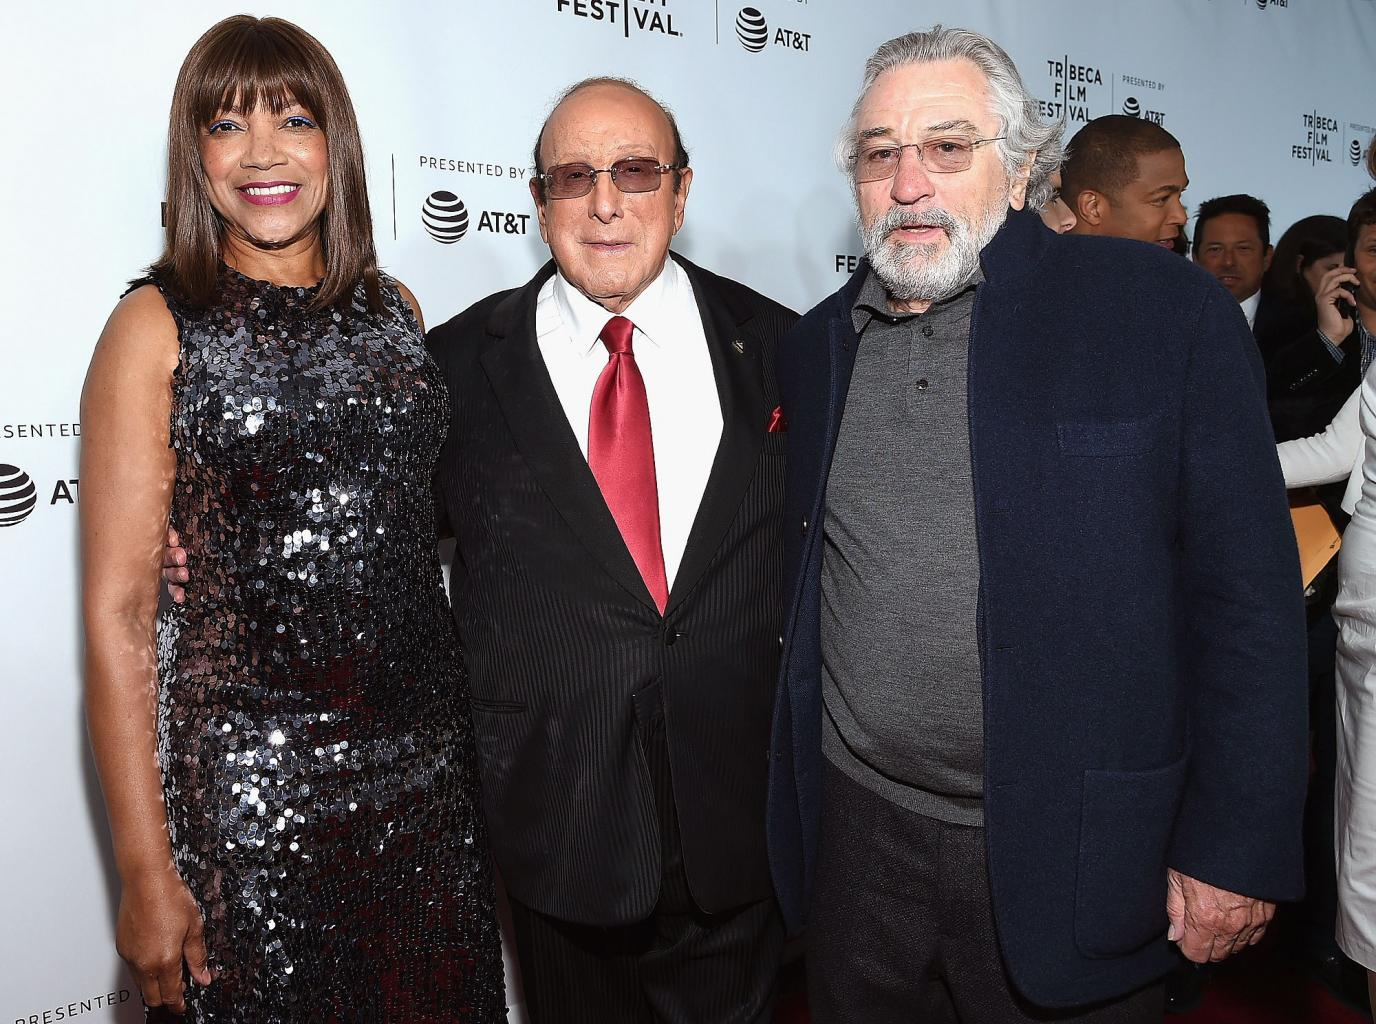 Robert De Niro Feels Good Selecting Clive Davis' Documentary to Kickoff Tribeca Film Festival: 'This is The Way It Should Be'